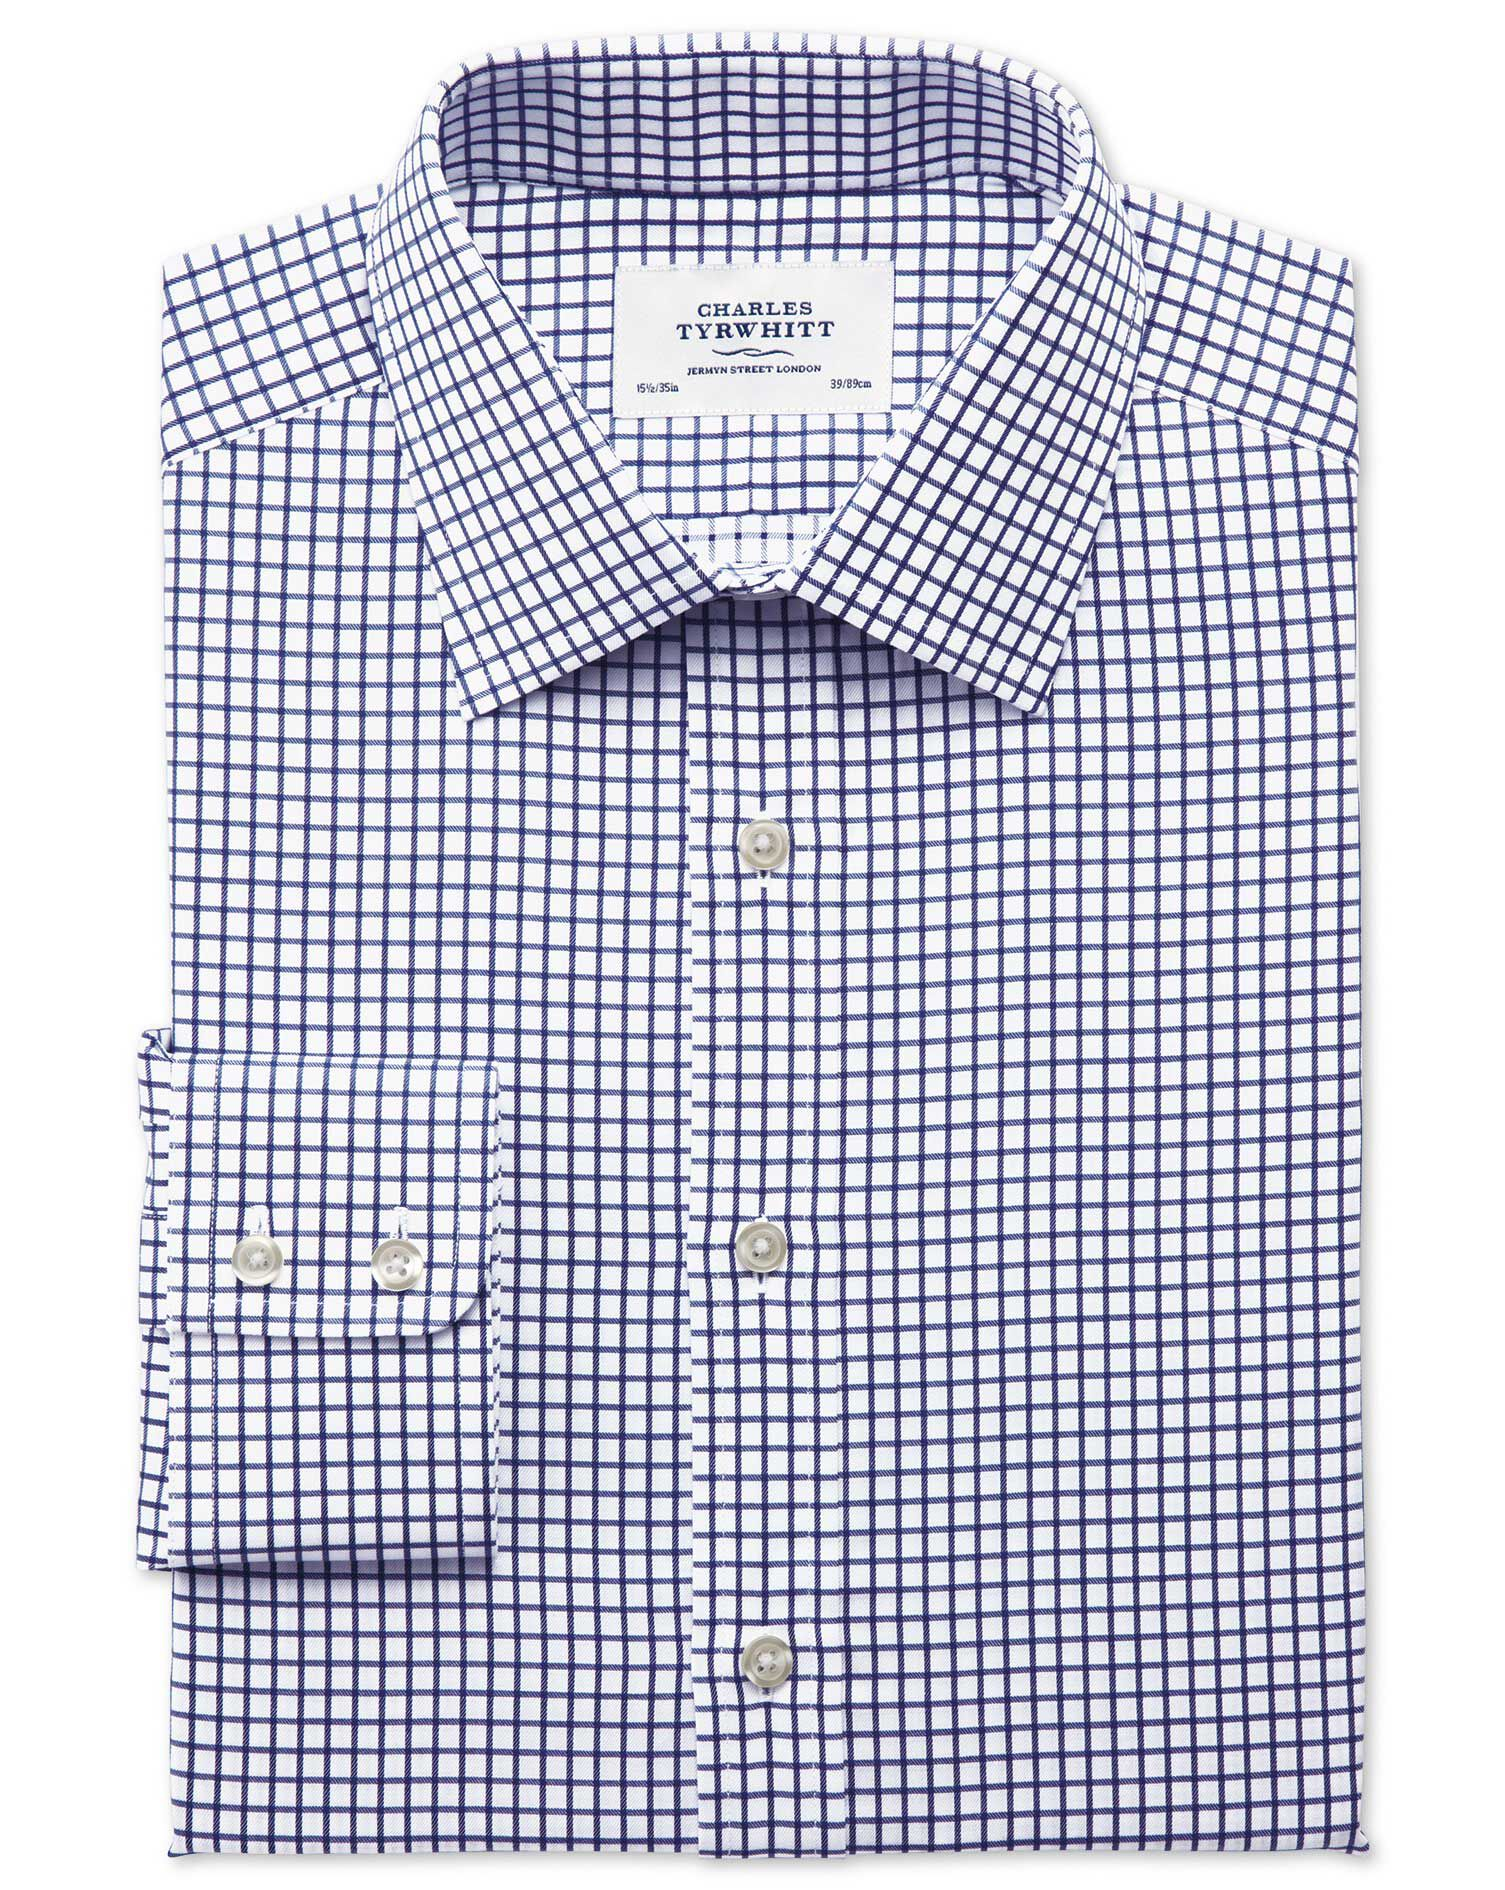 Classic Fit Twill Grid Check Navy Cotton Formal Shirt Single Cuff Size 15.5/32 by Charles Tyrwhitt